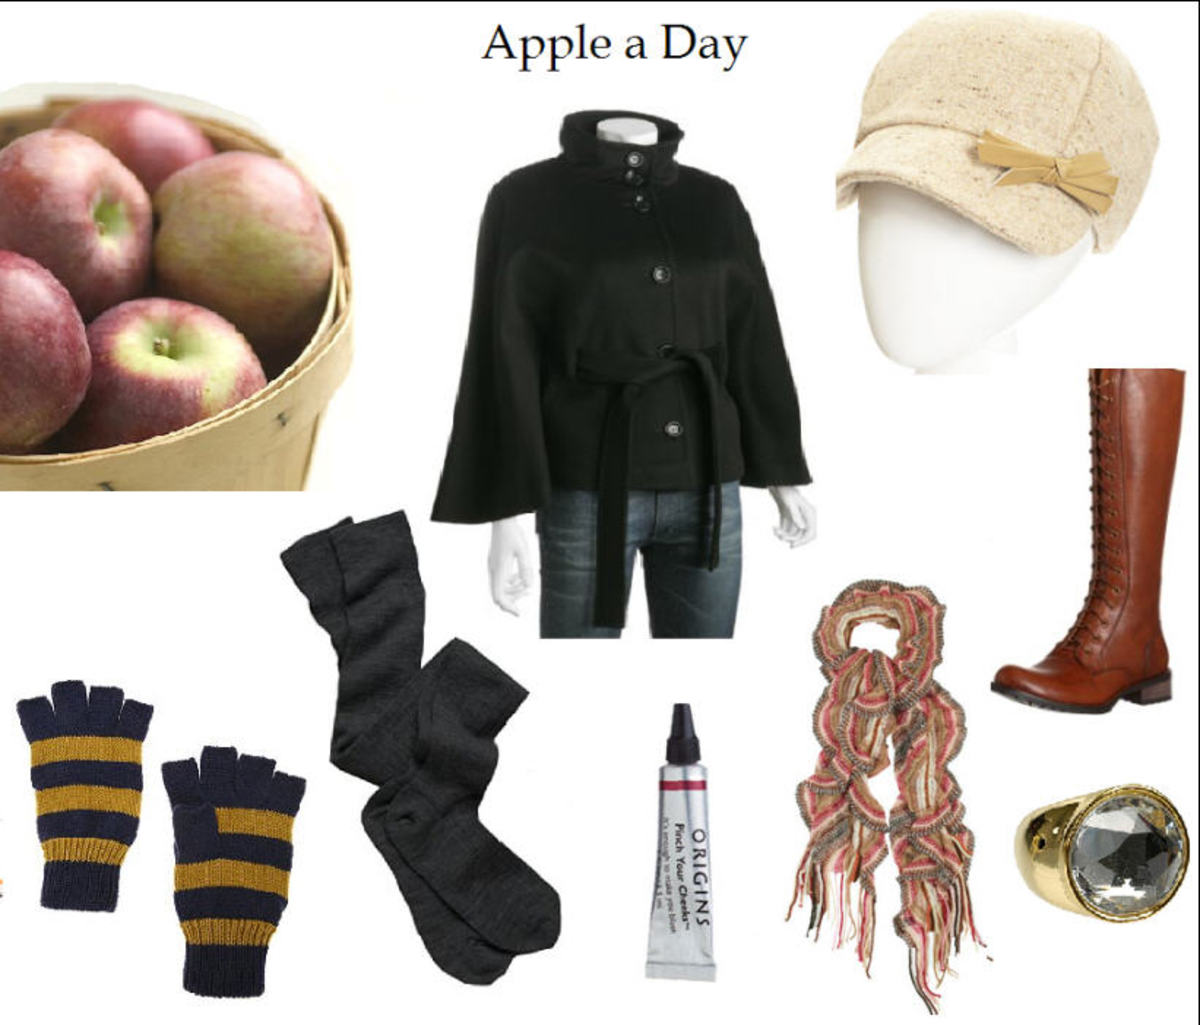 apple_a_day_collage